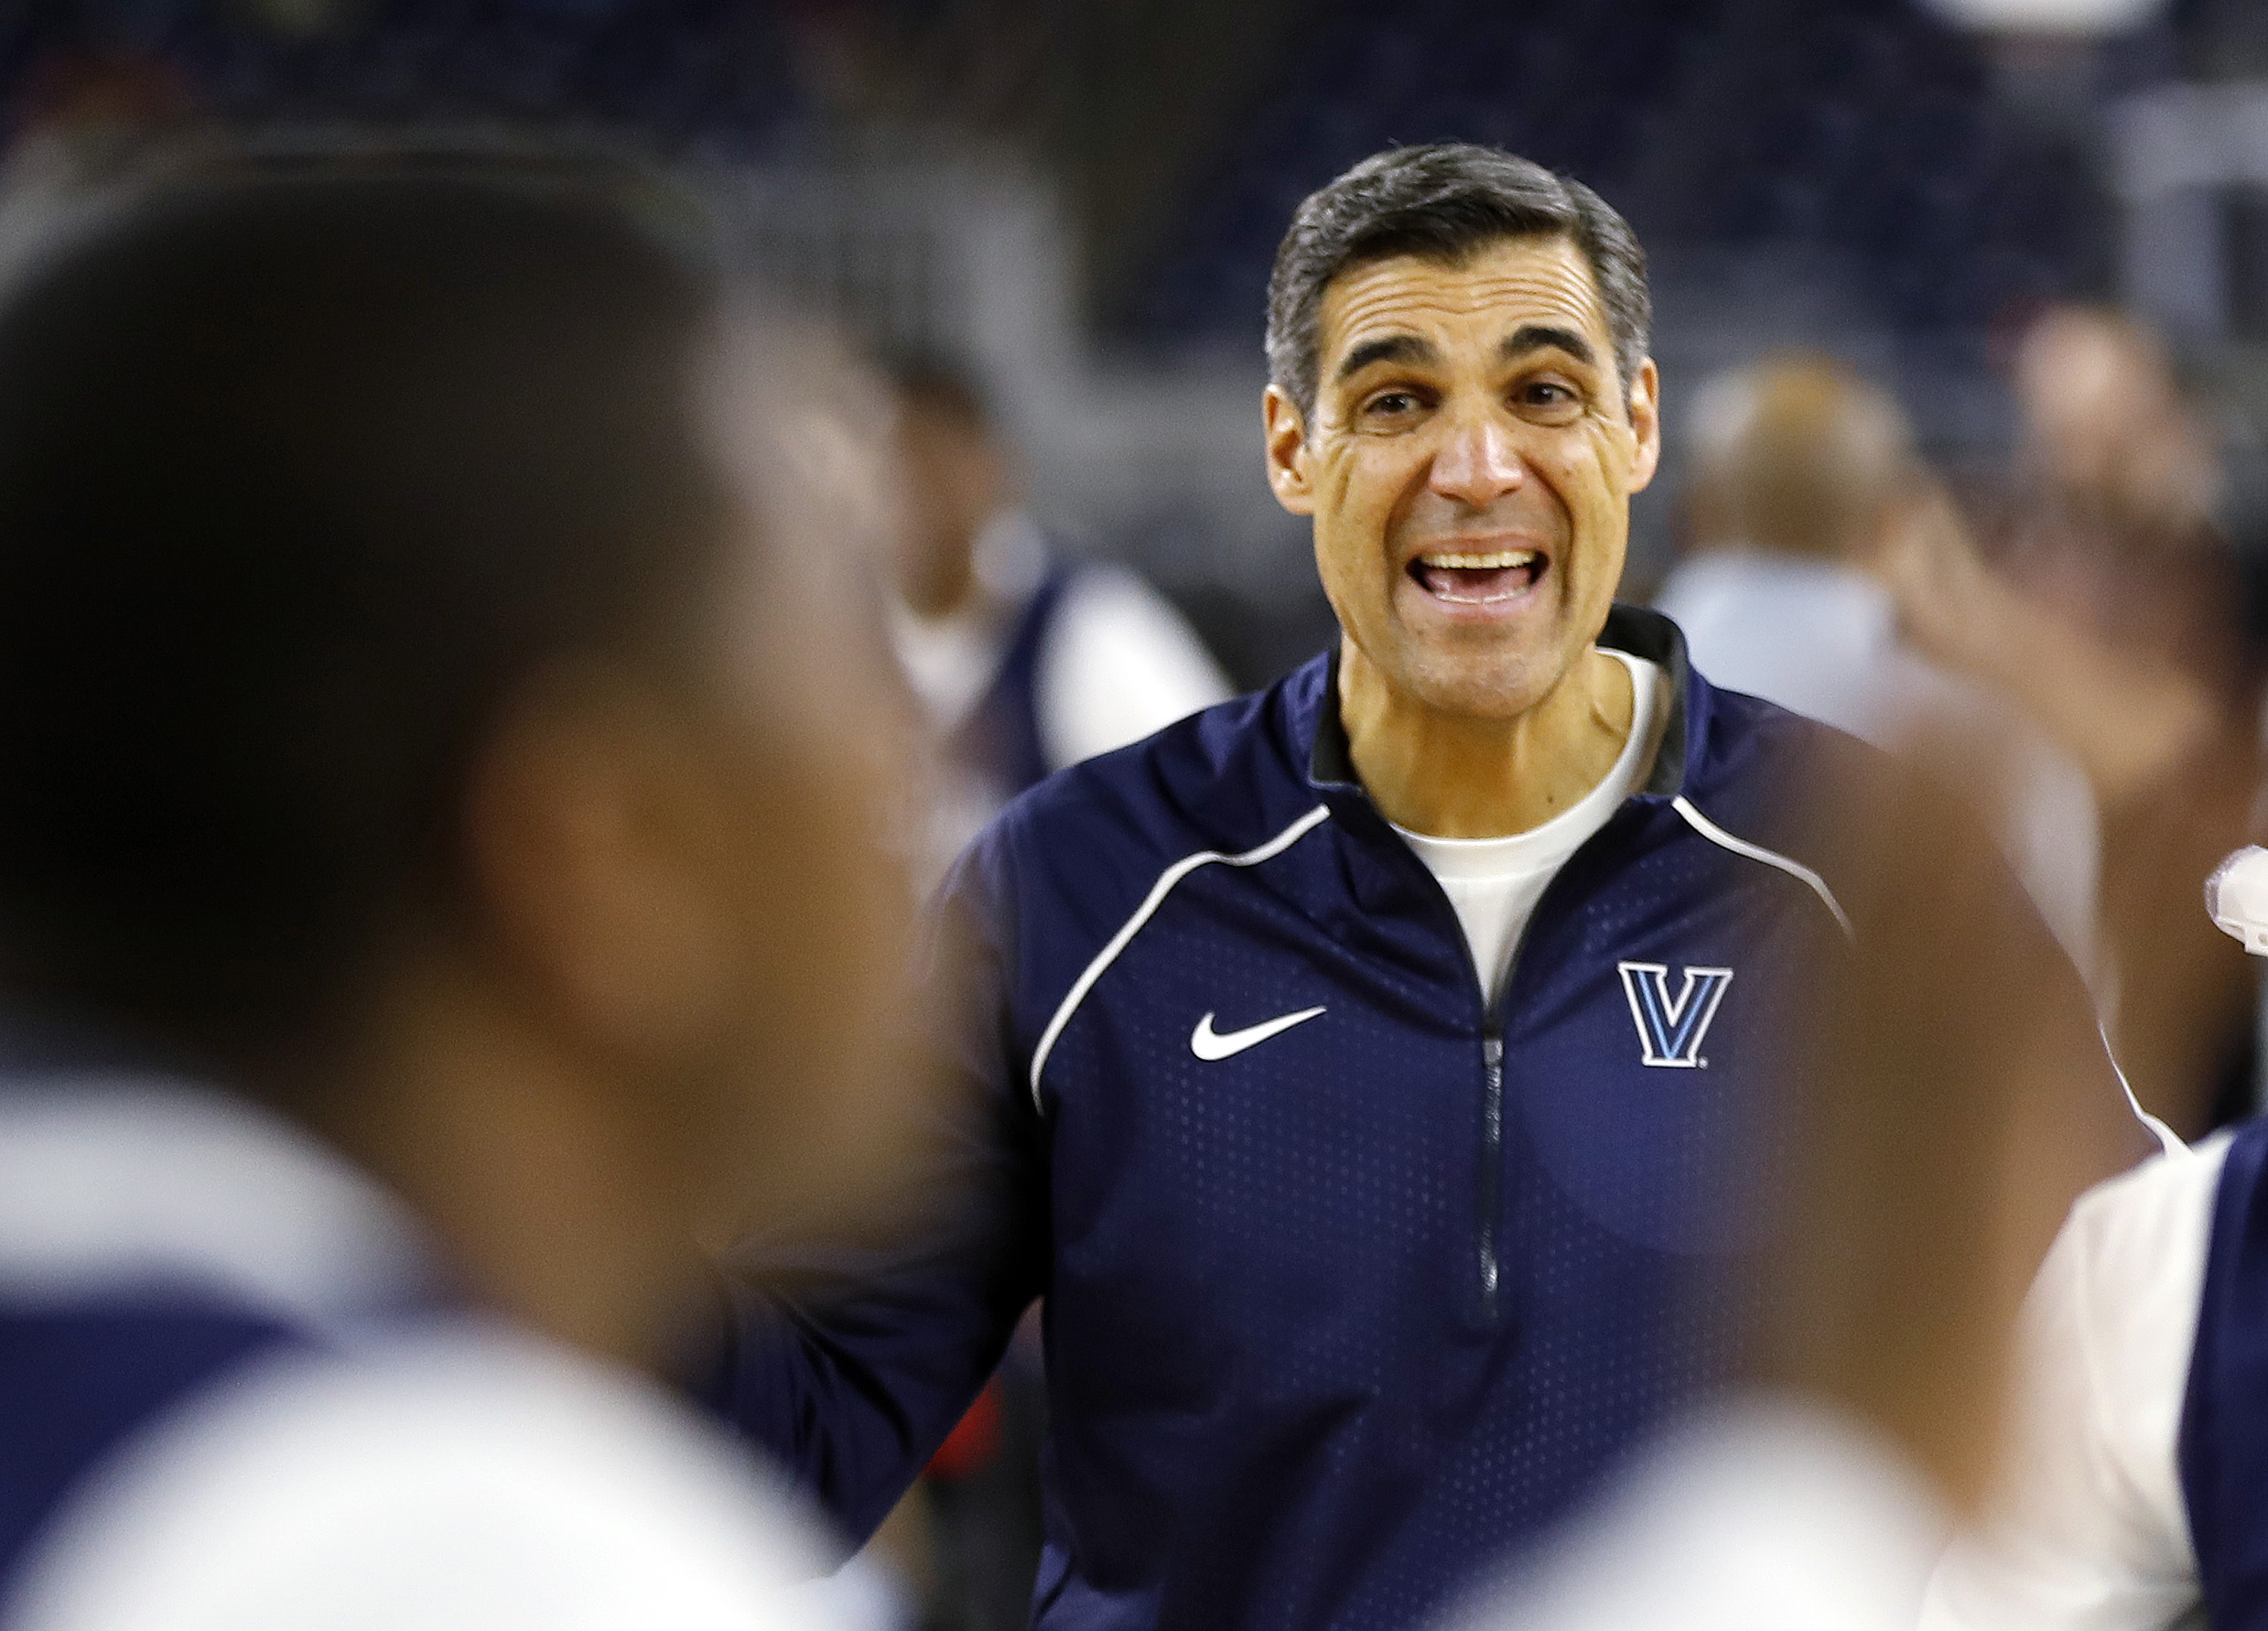 Villanova head coach Jay Wright watches a drill during a practice session for the NCAA Final Four college basketball tournament Friday, April 1, 2016, in Houston. (AP Photo/David J. Phillip)